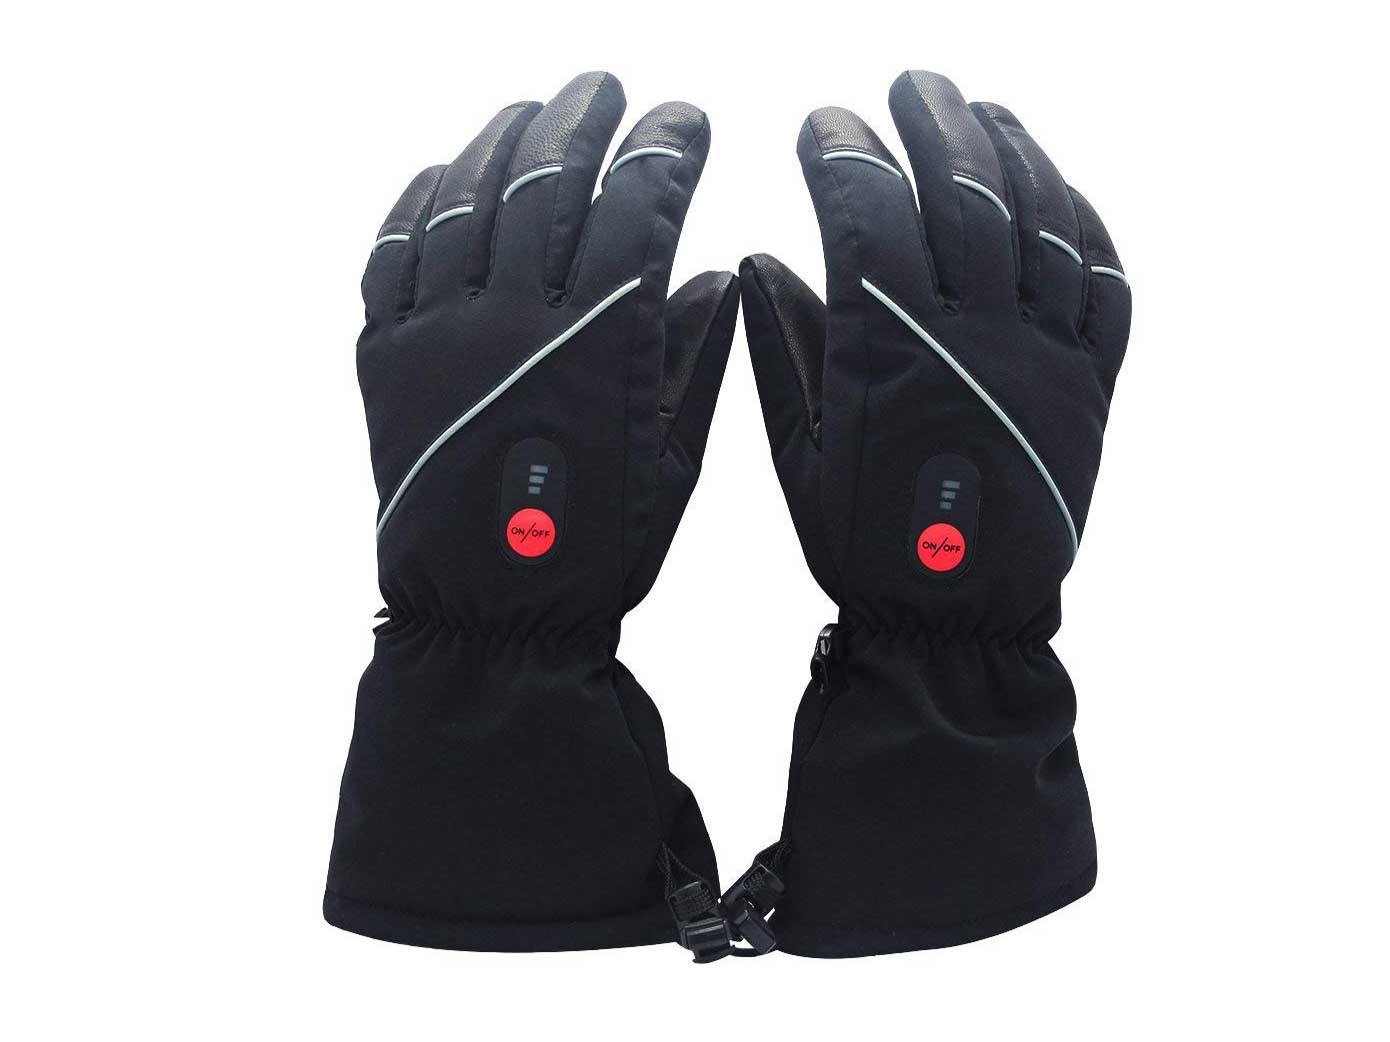 Savior Heated Gloves for Men Women, Electric Heated Gloves